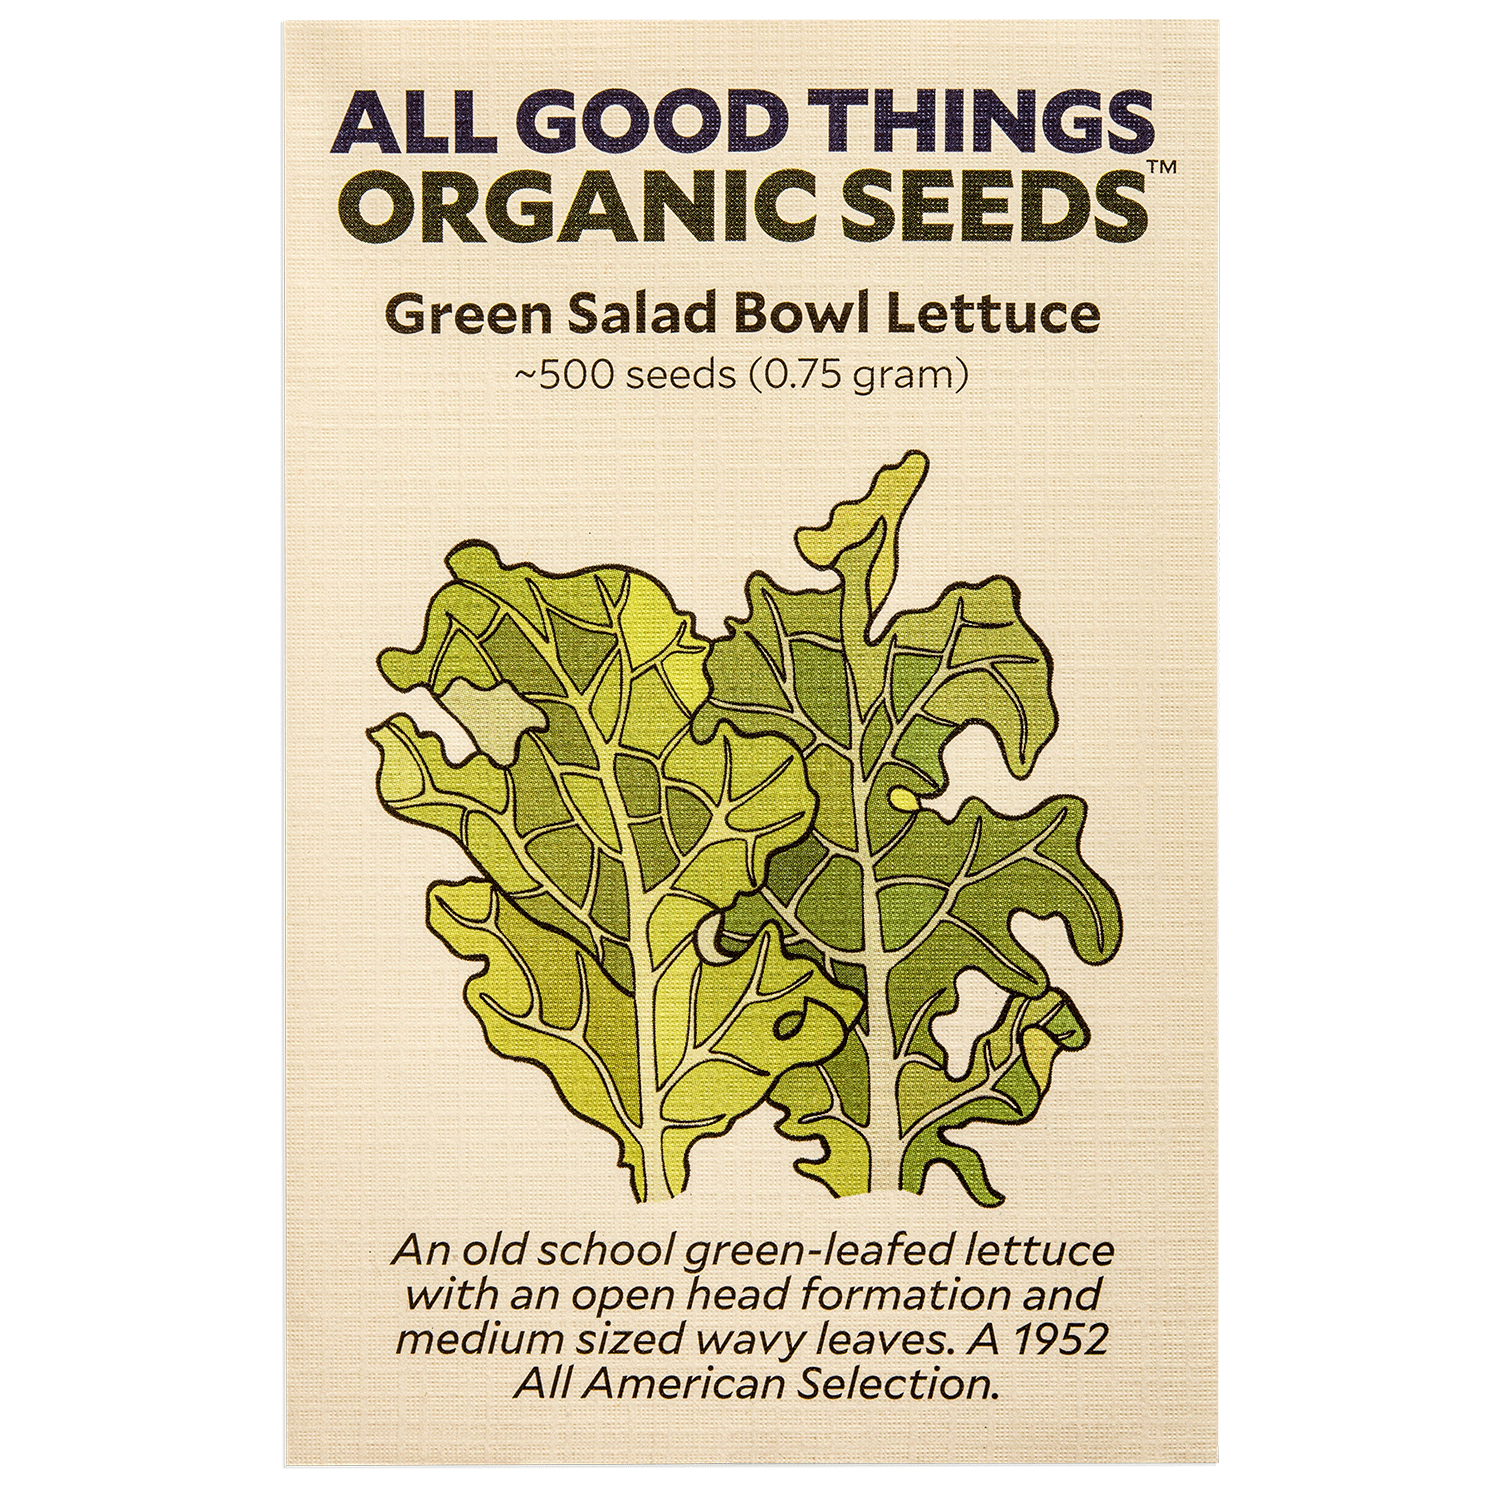 Green Salad Bowl Lettuce